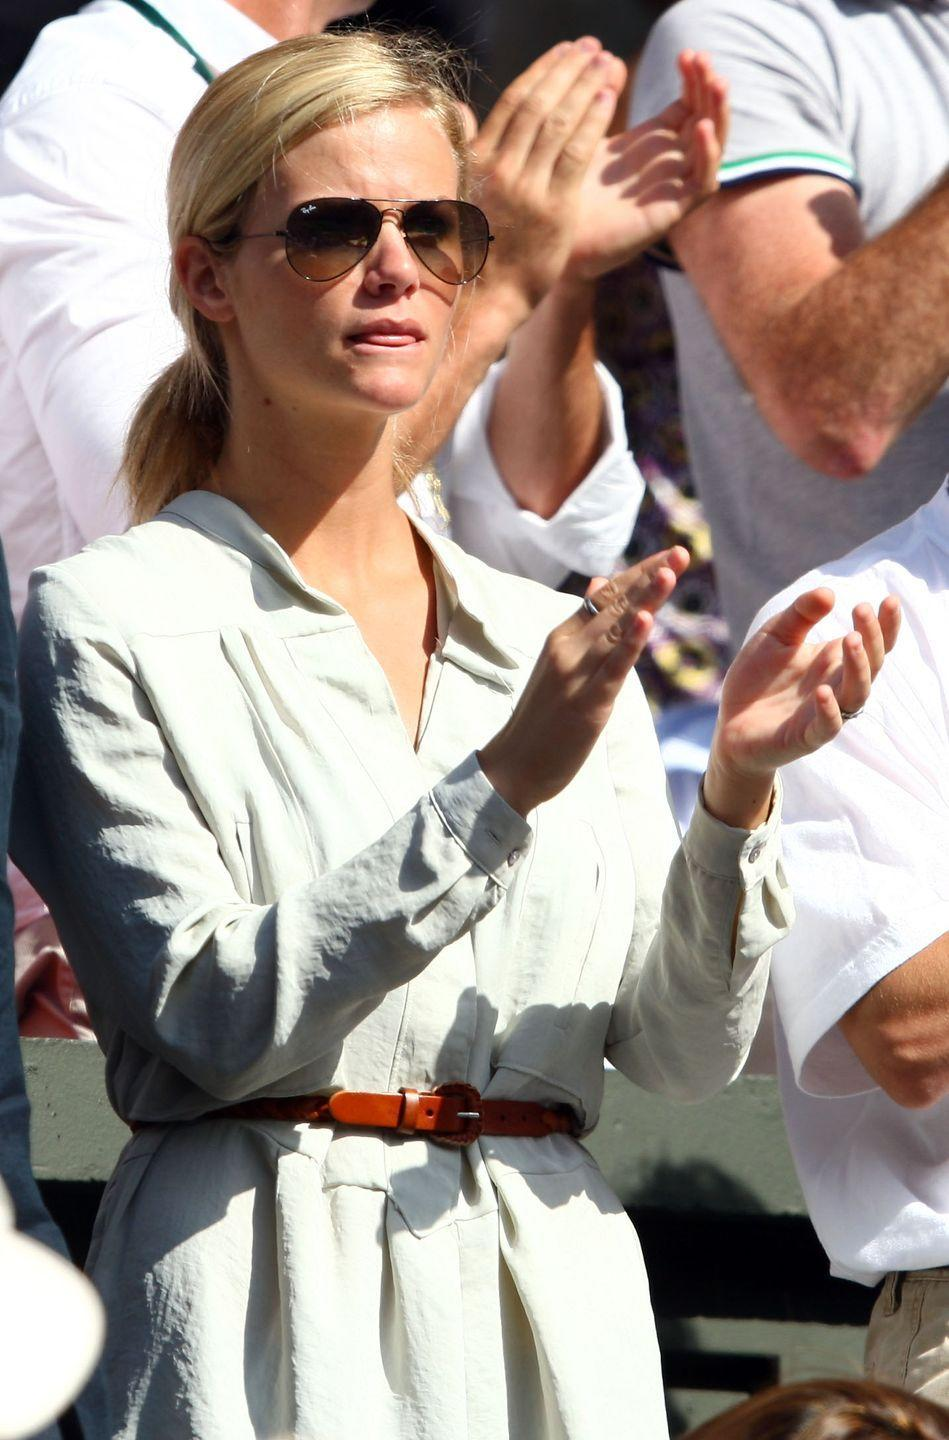 <p><strong>2009</strong> Actress Brooklyn Decker was pictured cheering on her husband Andy Roddick at the championship in 2009. She wore a casual cream shirt dress and aviator sunglasses.</p>